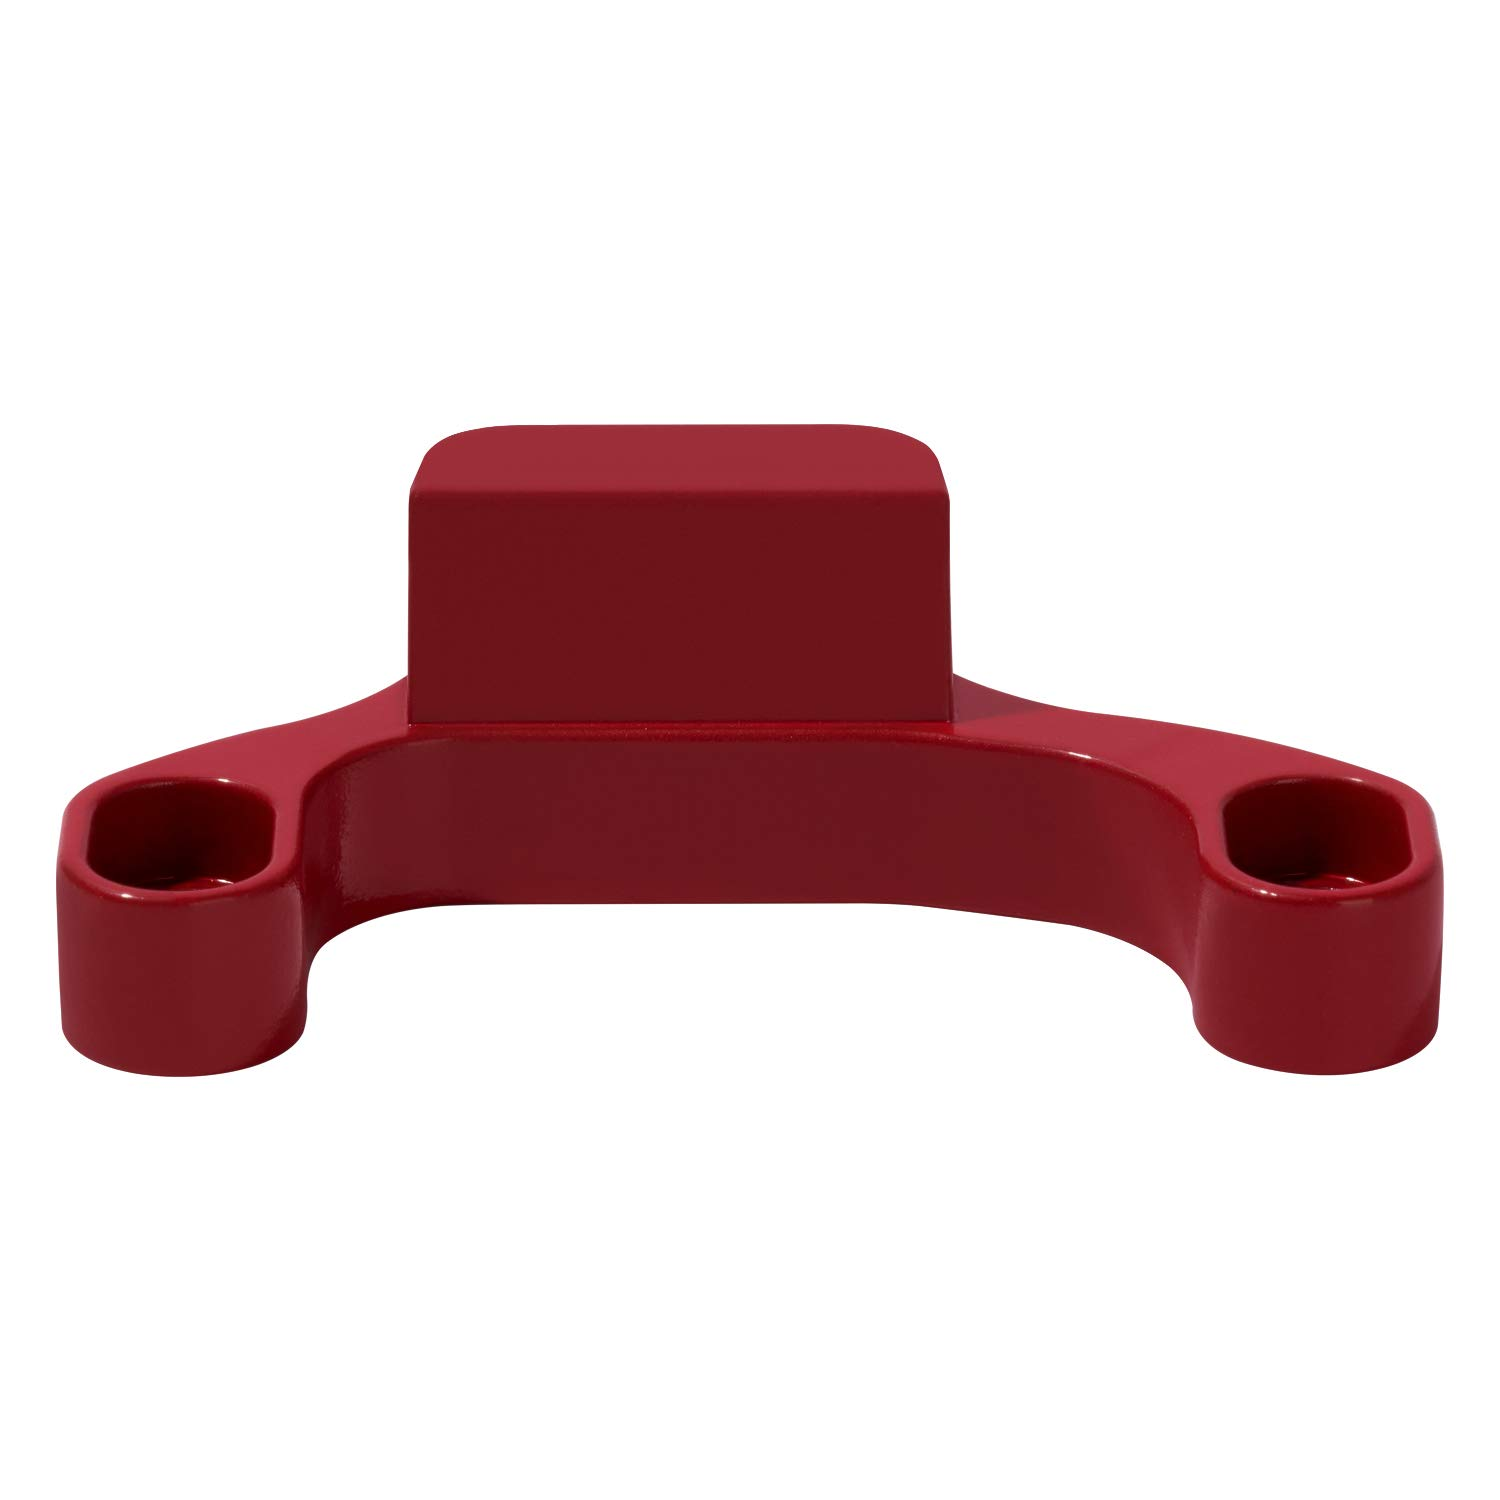 WRX//2010-2014 Legacy//Outback//2014 Forester Red Vincool Anodized Aluminum Shifter Stop Gap Removal for Subaru 2015